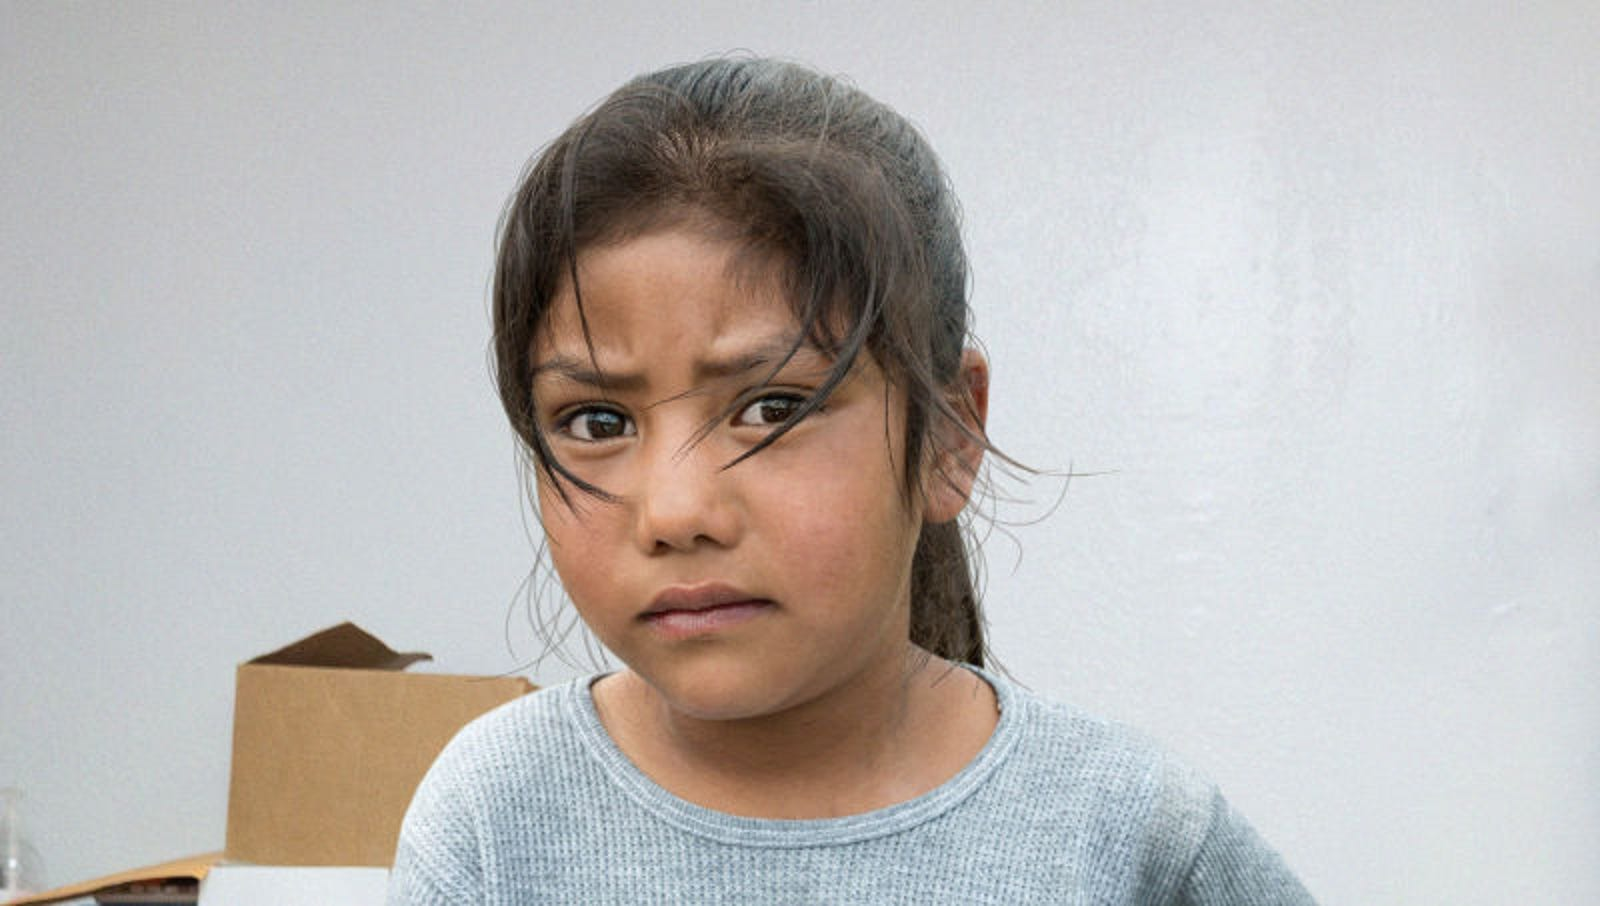 Picky Refugee Just Expects To Be Reunited With Exact Same Family As Before